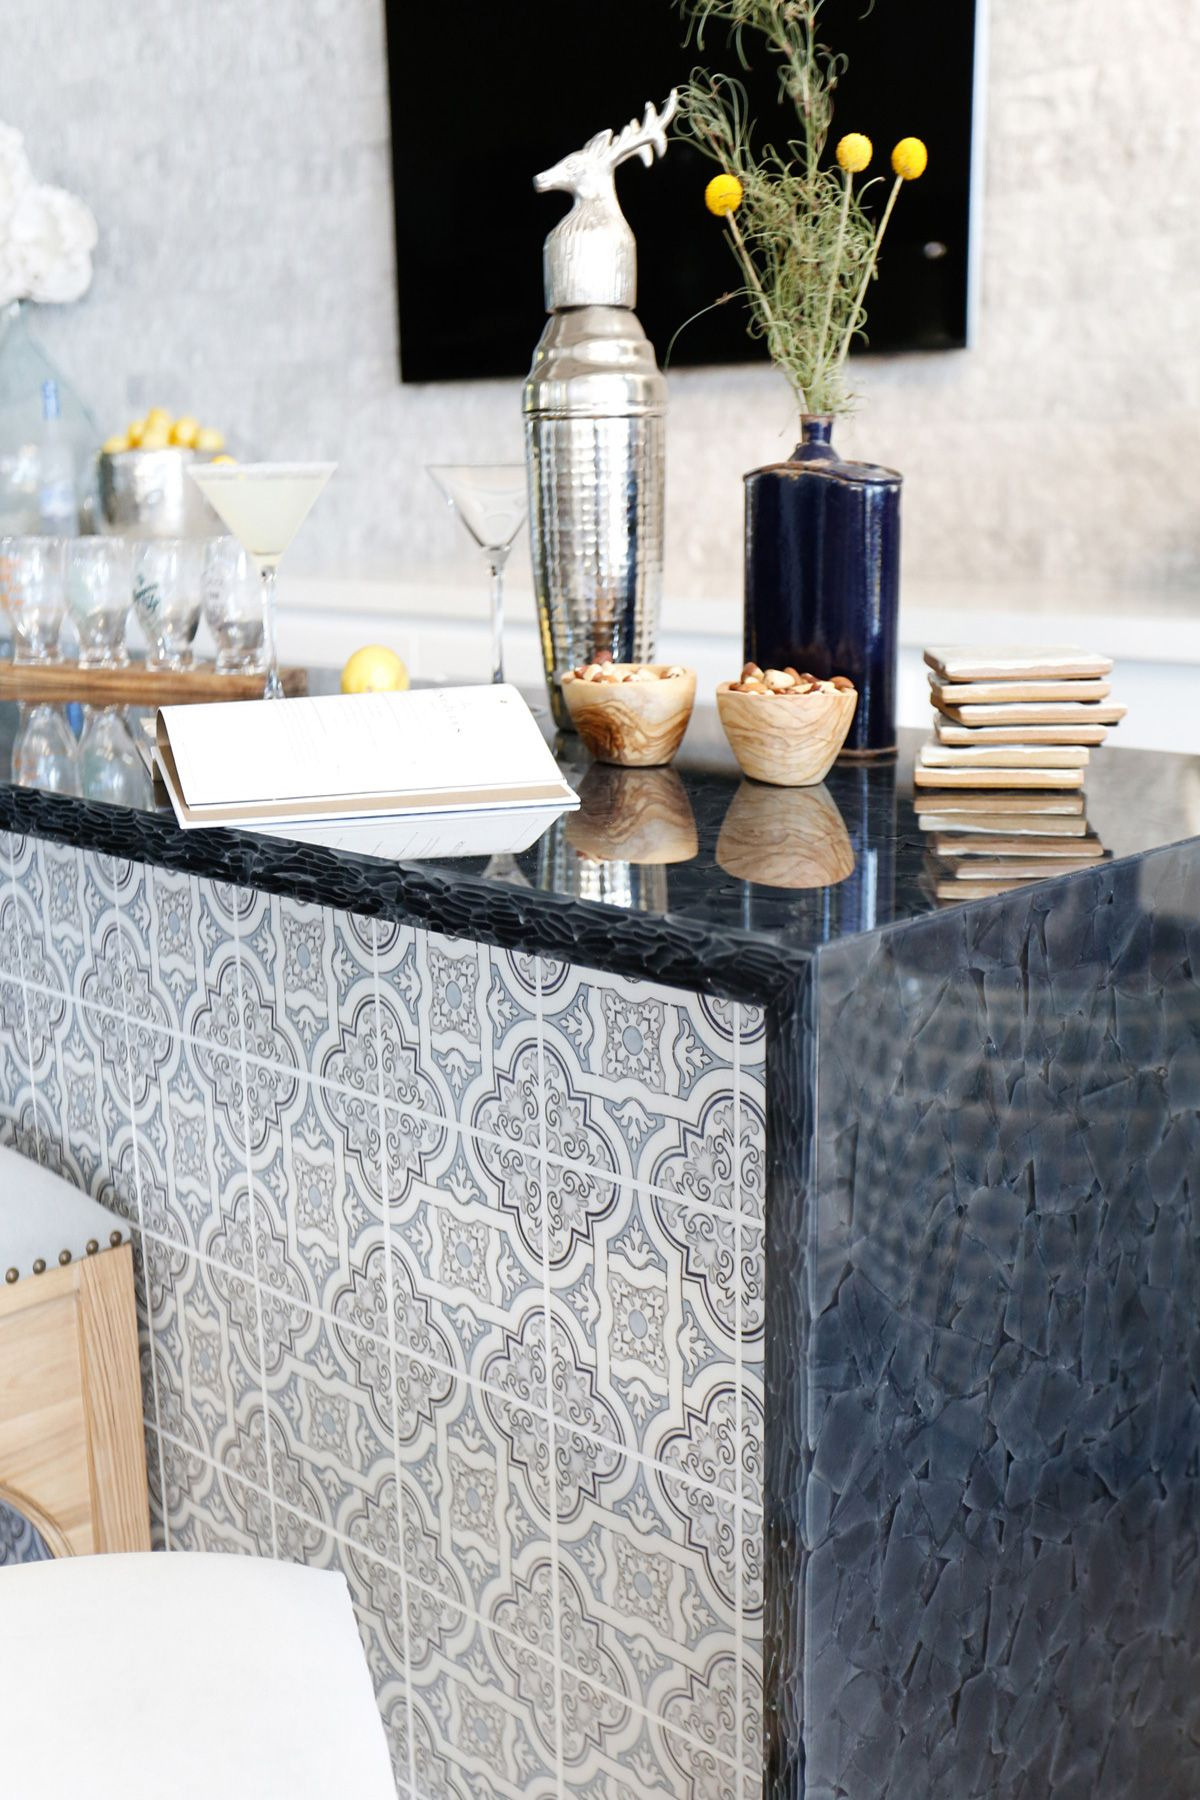 Project San Clemente | San clemente, Glass bar and Carrara marble